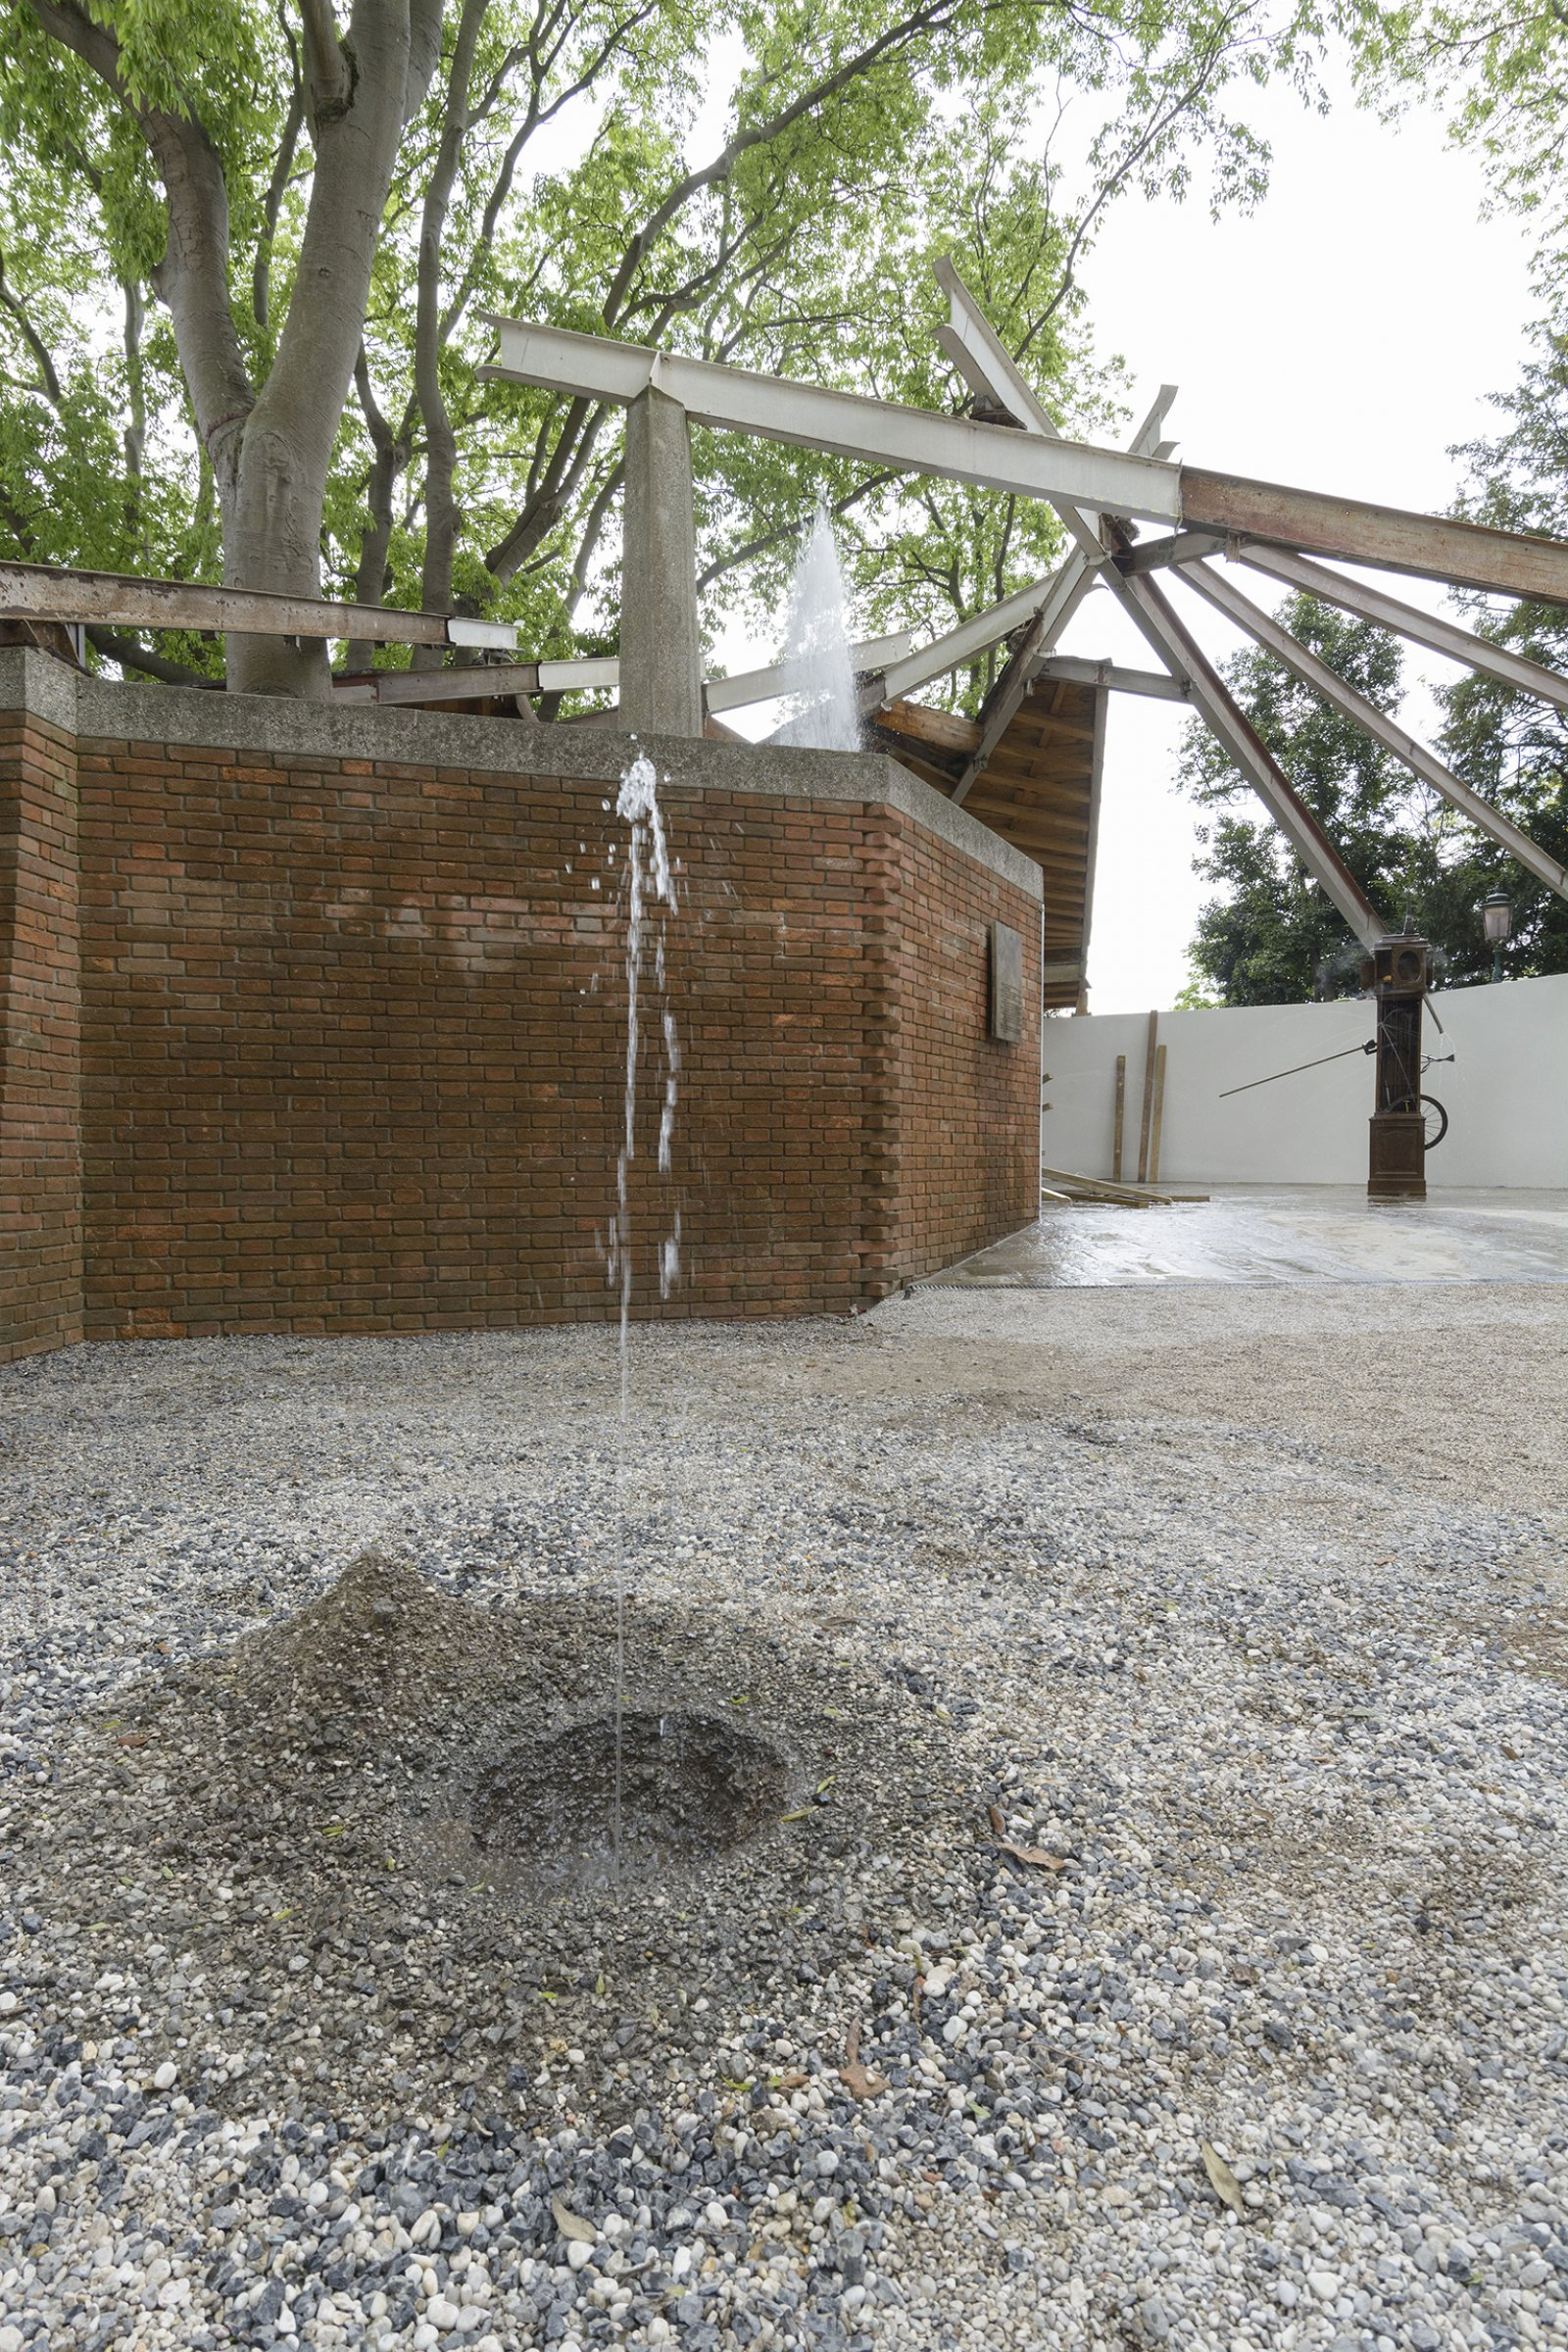 Geoffrey Farmer, Drinking Fountain, 2017, tombak cast of a hole in the ground, sensor, water technics, 12 x 63 x 55 in. (30 x 160 x 140 cm). Installation view, A way out of the mirror, Canada Pavilion, 57th Venice Biennale, Venice, Italy